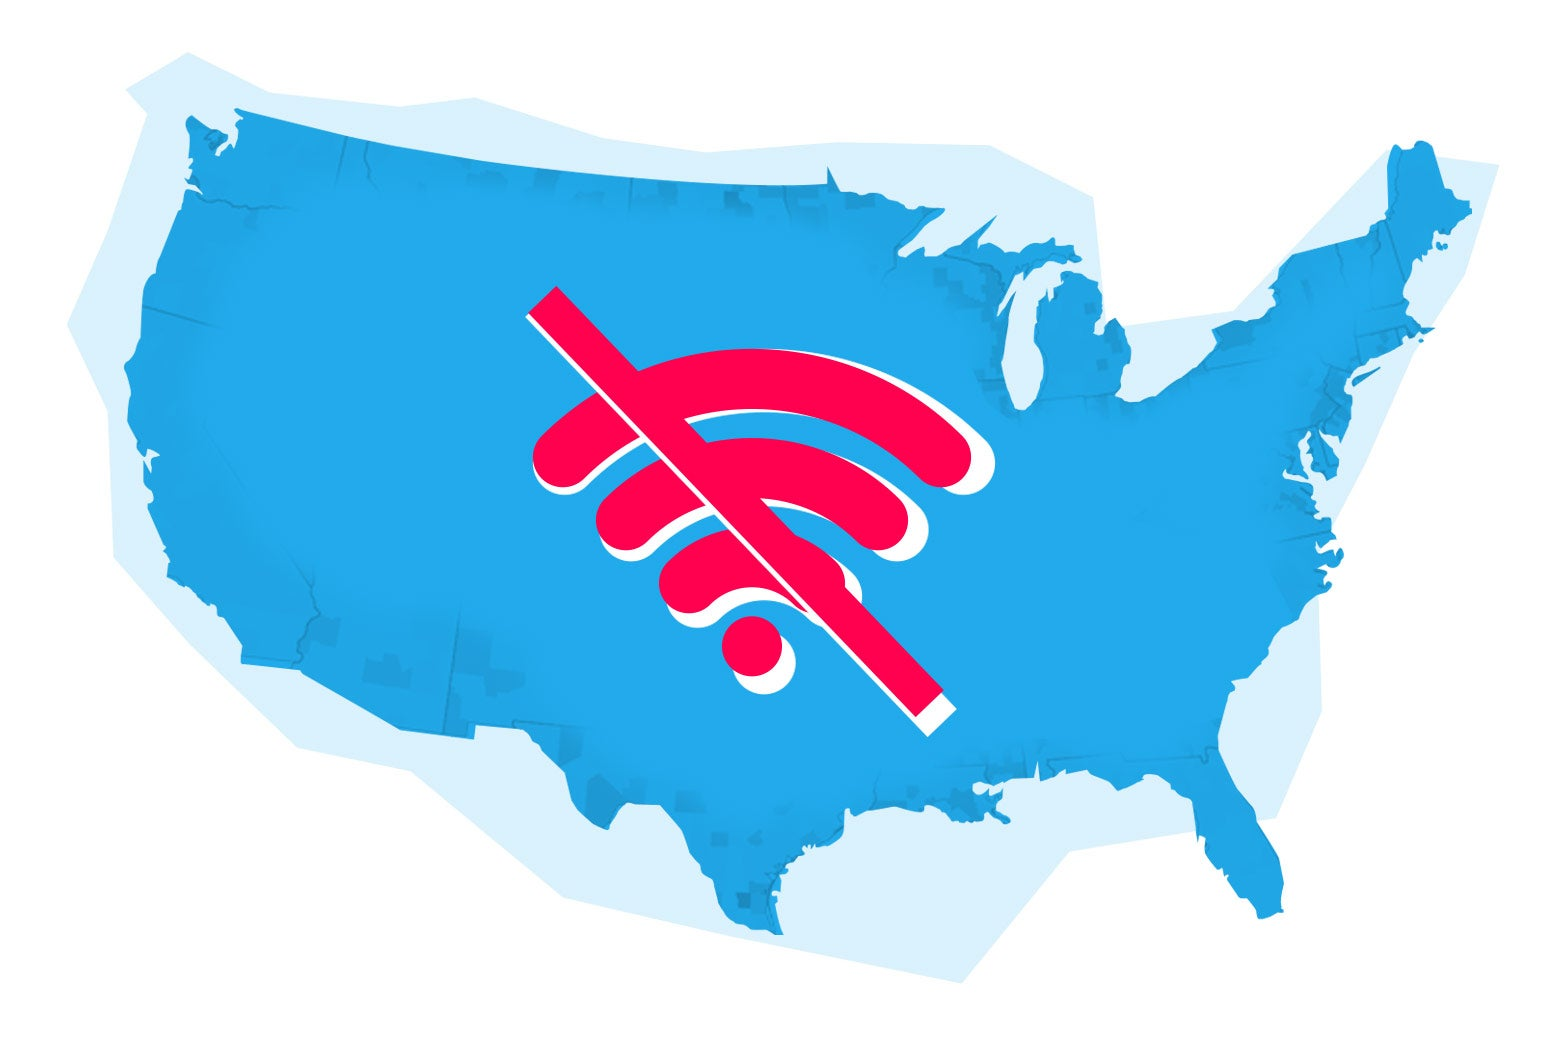 Illustration: A U.S. map with the no Wi-Fi symbol superimposed.